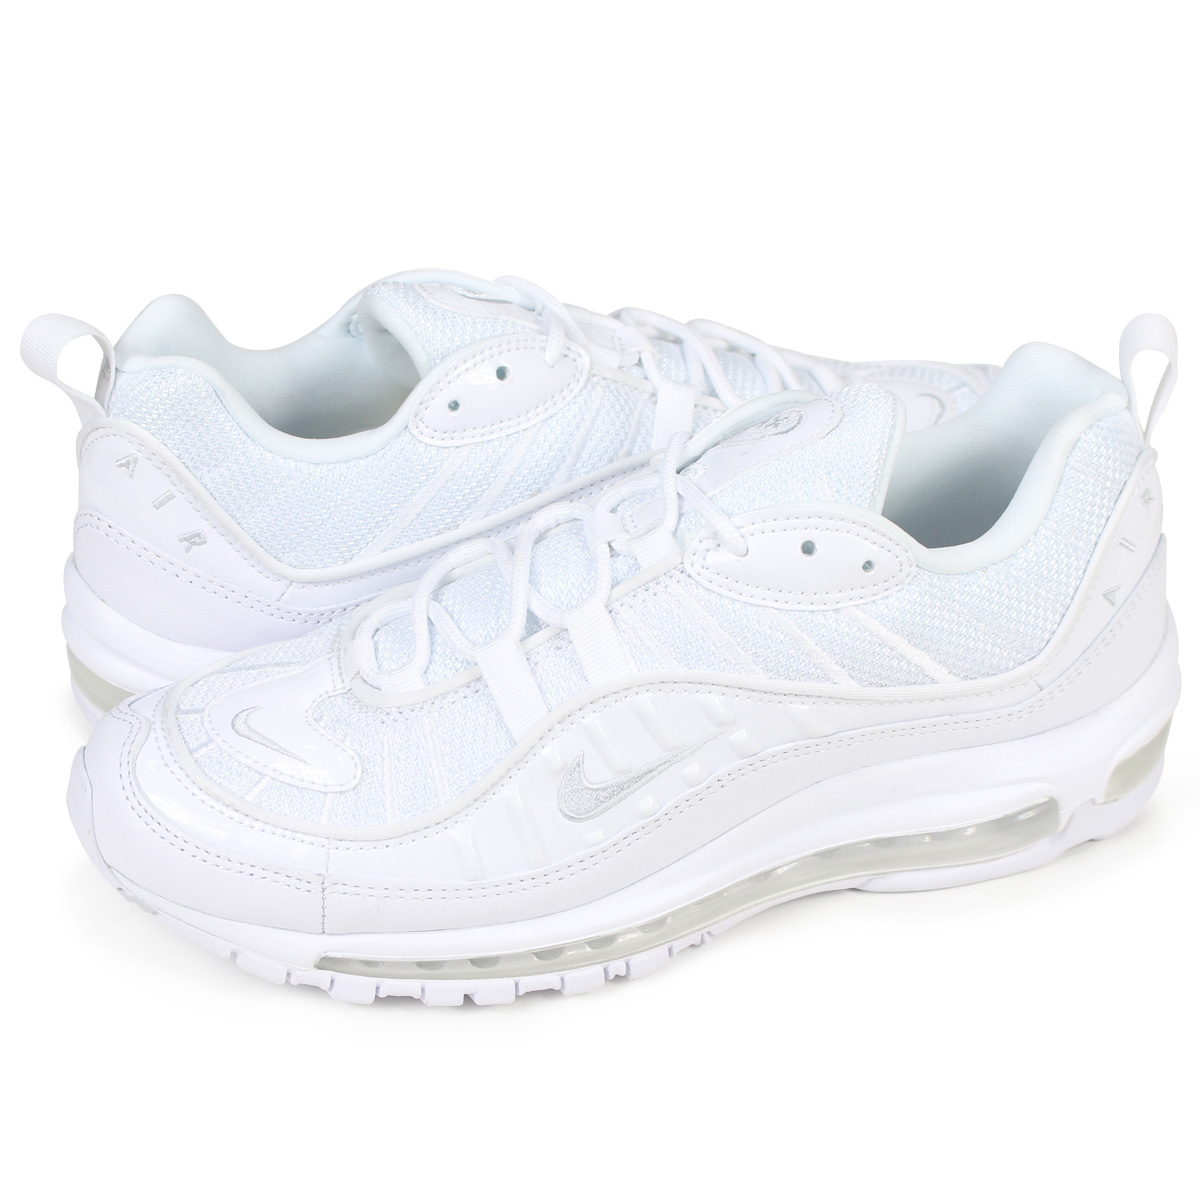 Nike NIKE Air Max 98 sneakers men AIR MAX 98 640,744 106 white white